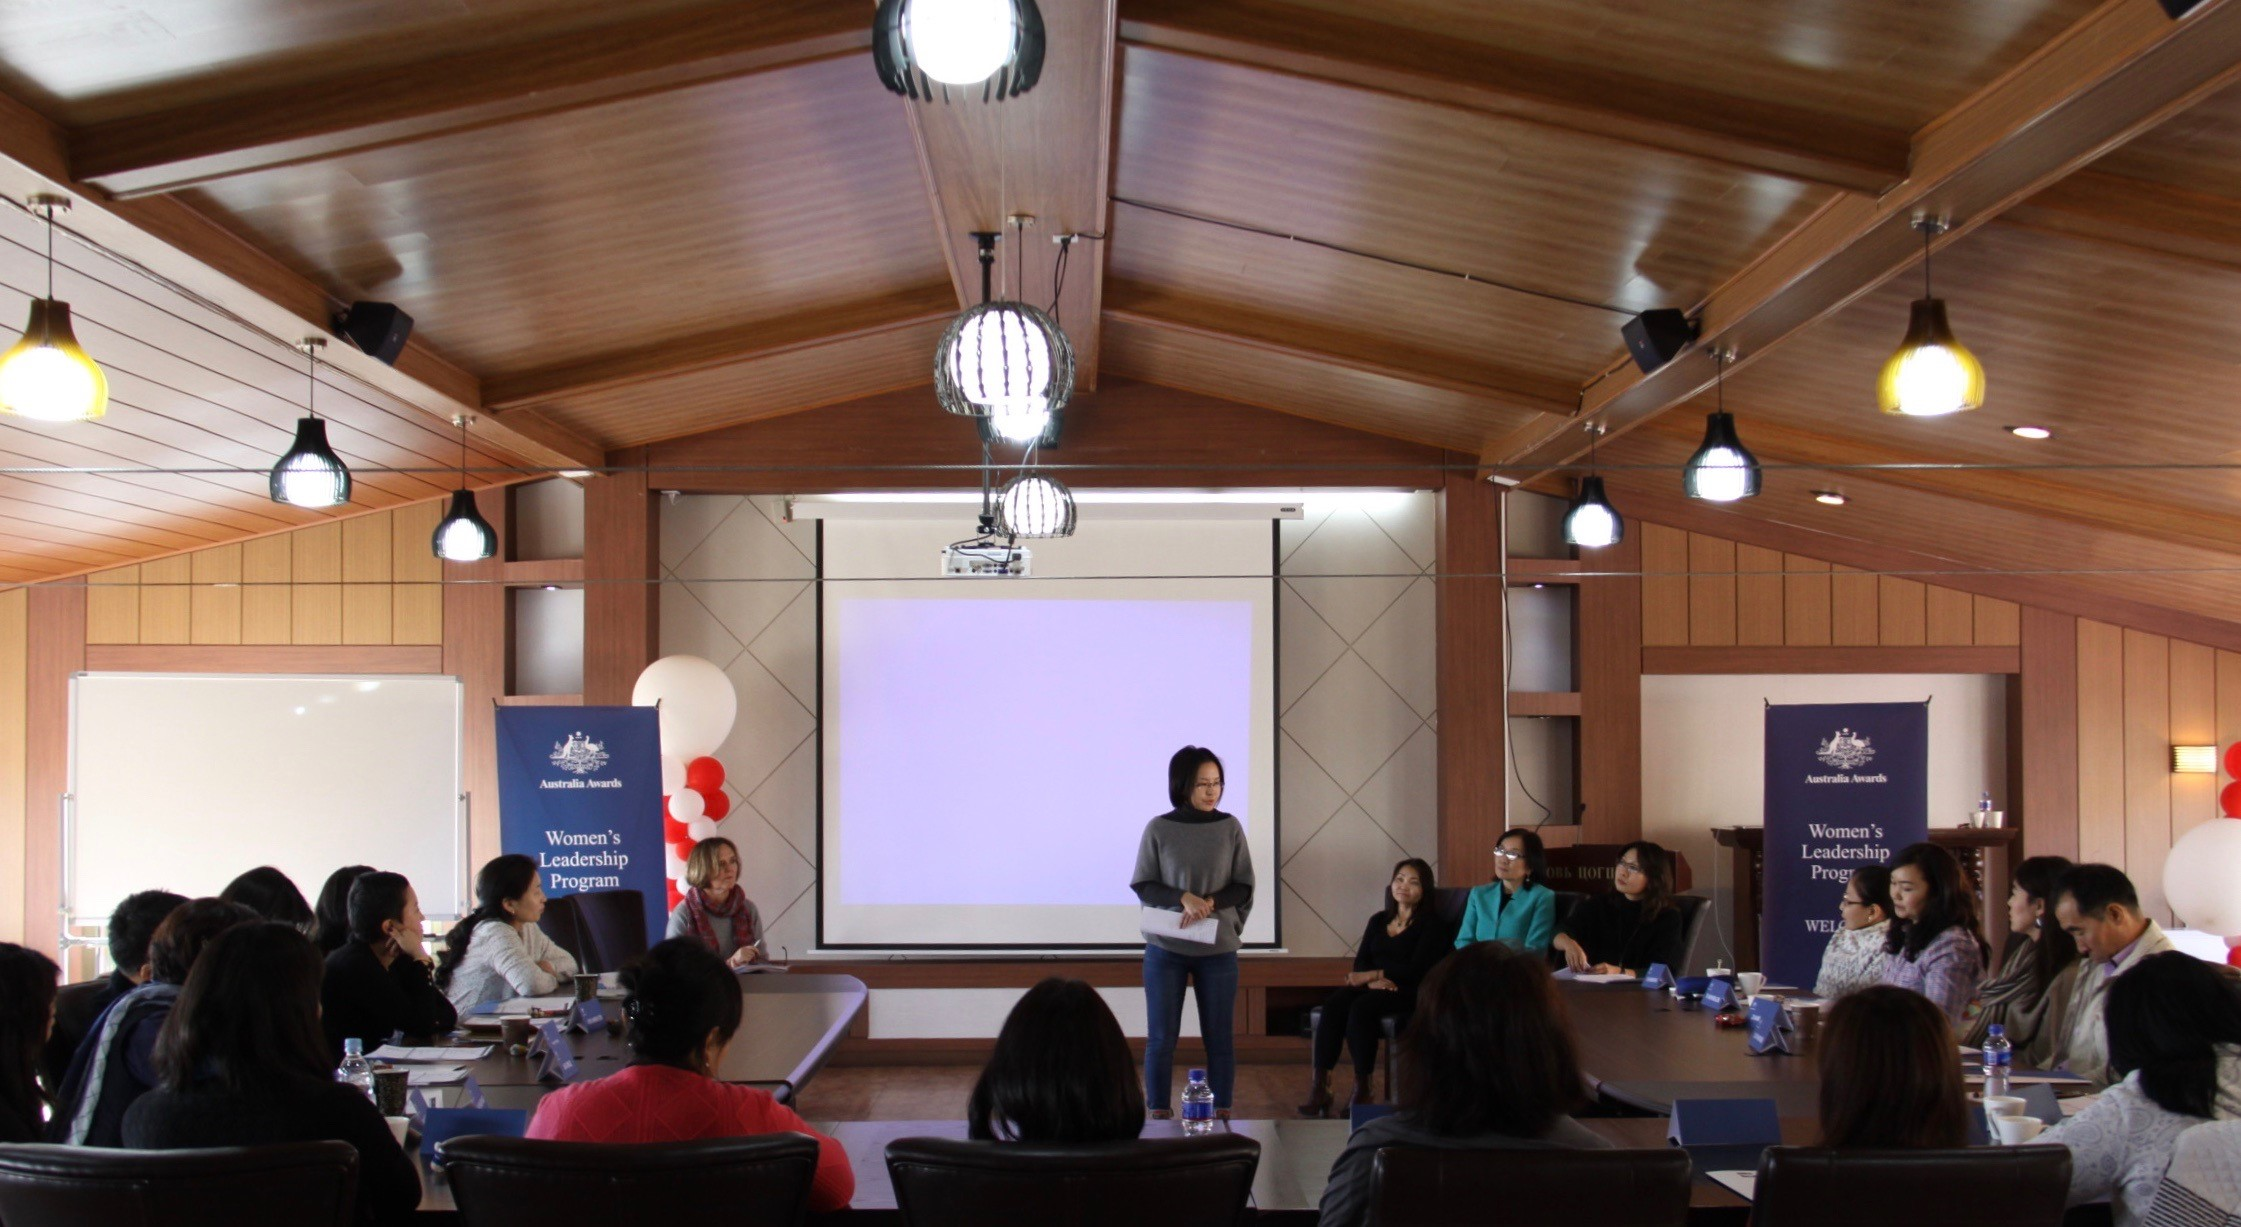 Attendees of the three day Women's Leadership Program (WLP) Orientation Retreat attend a presentation.